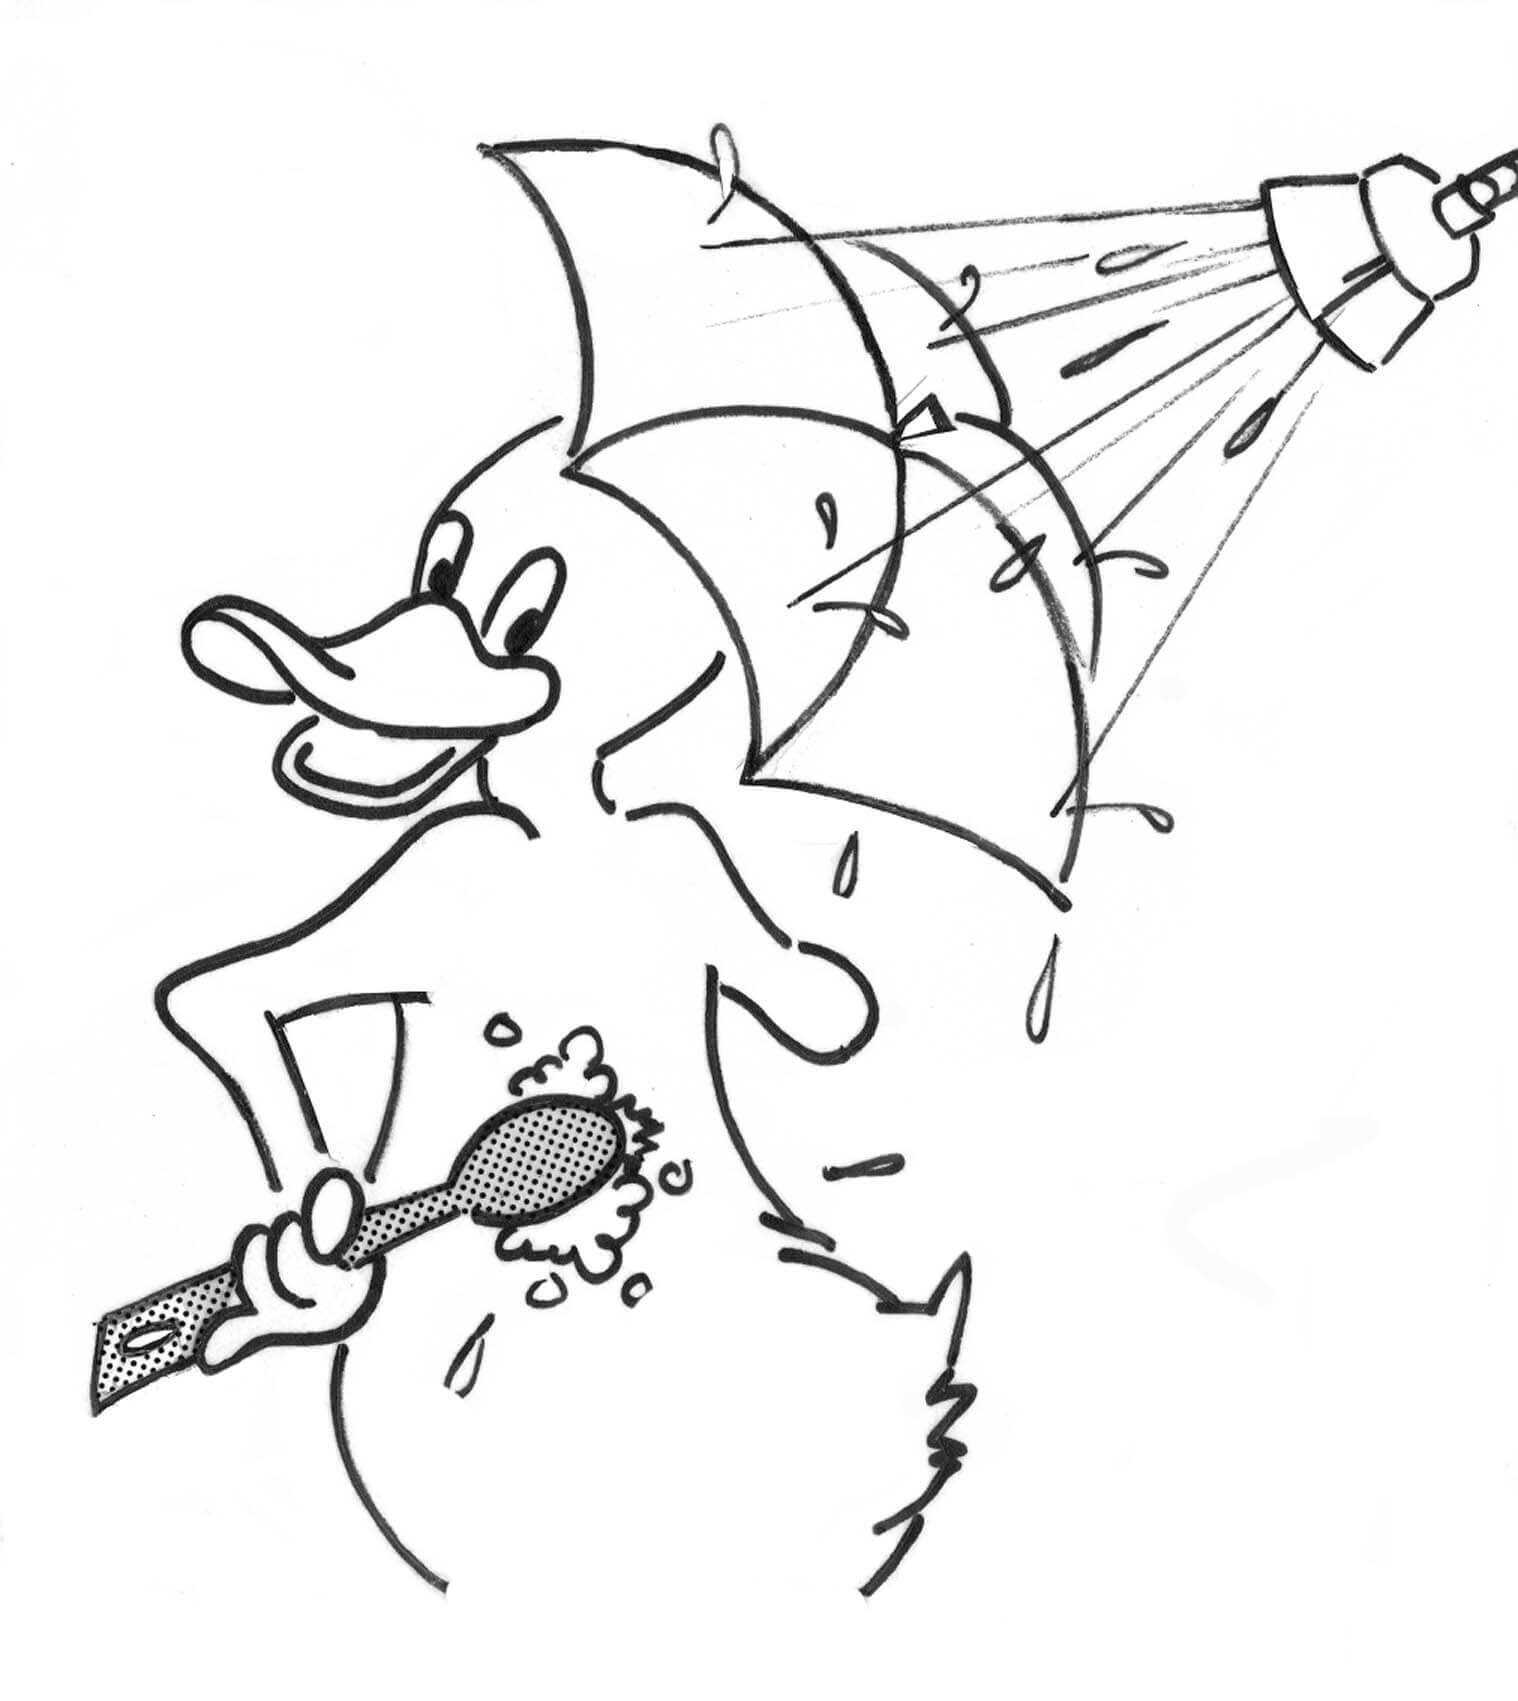 Cartoon duck with umbrella takes a shower Coloring Pages